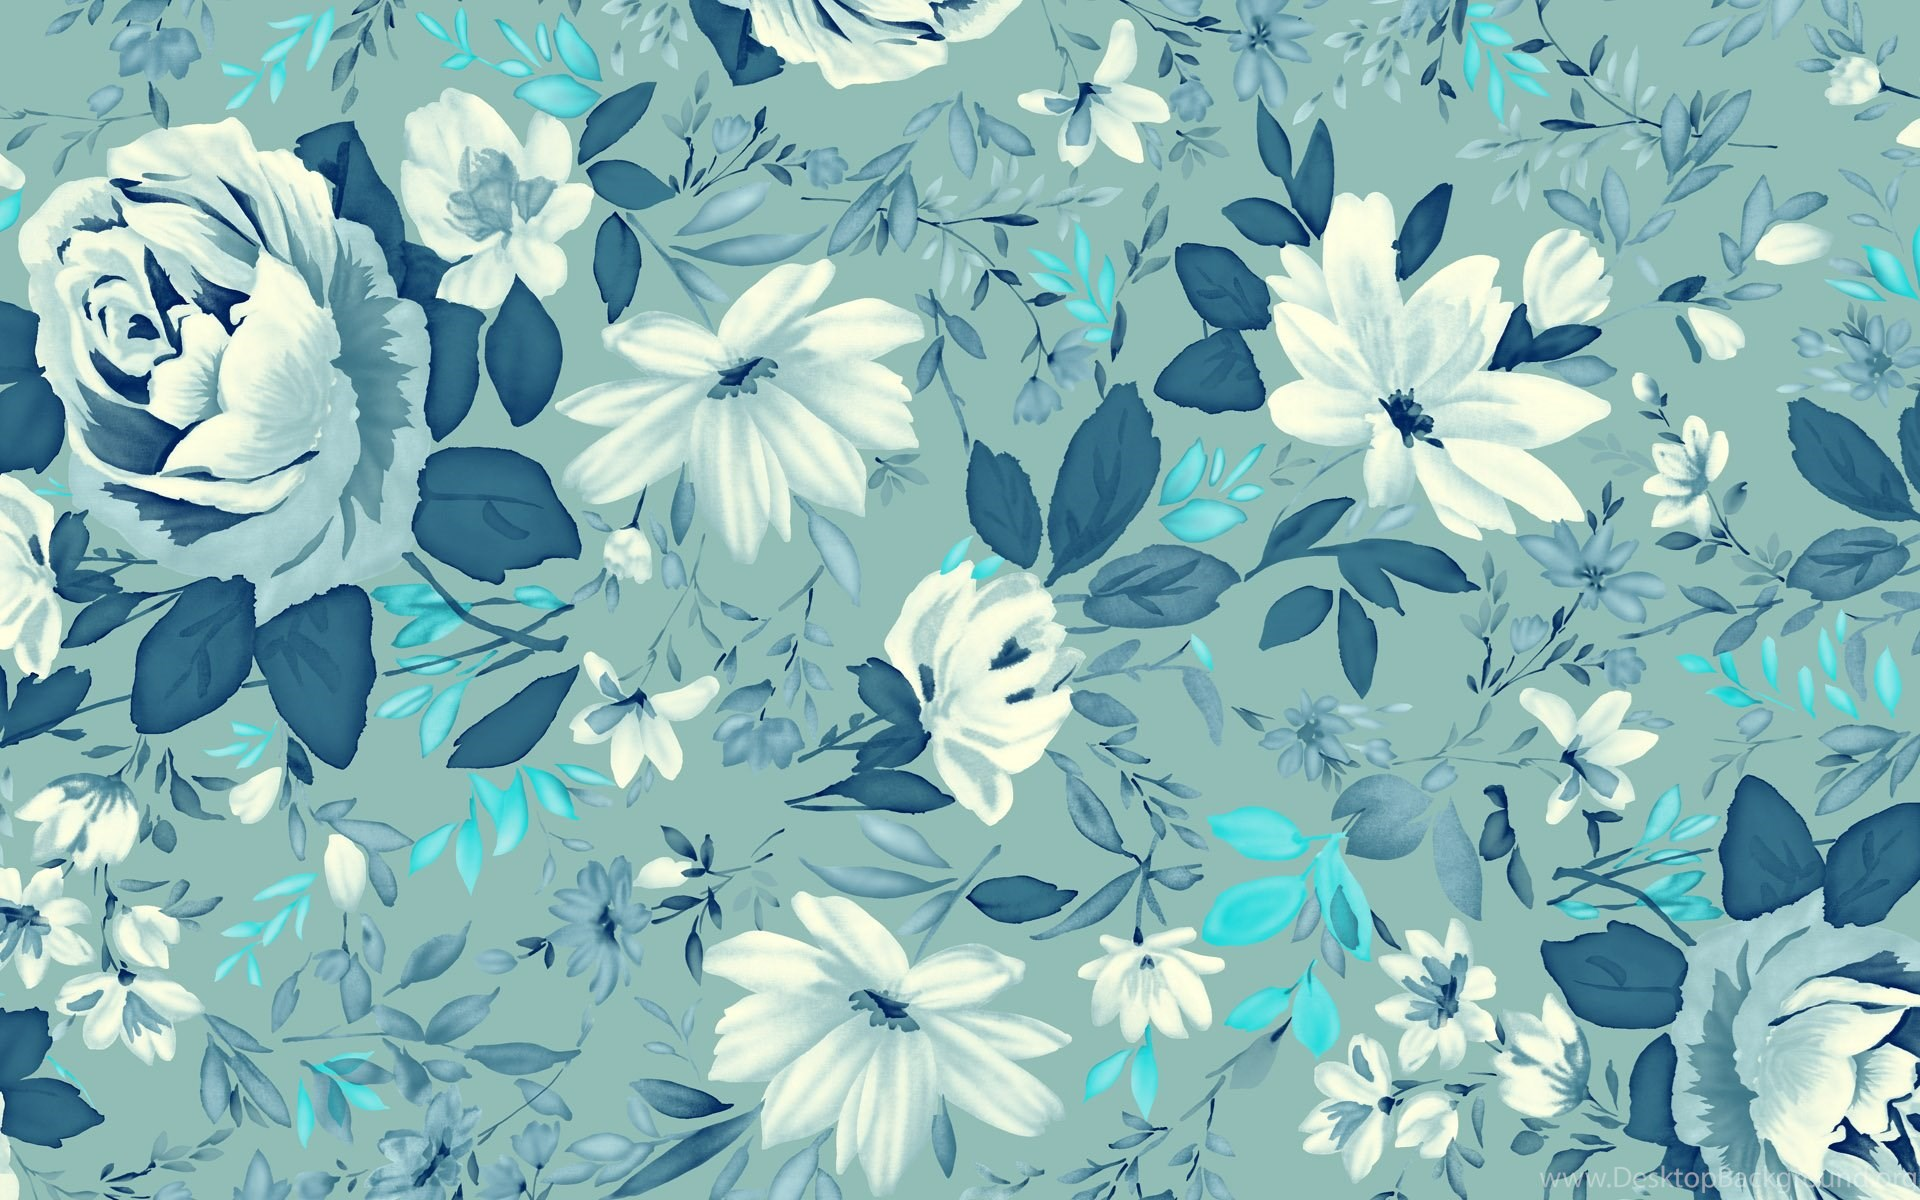 Floral Backgrounds Tumblr Wallpapers High Quality Resolution